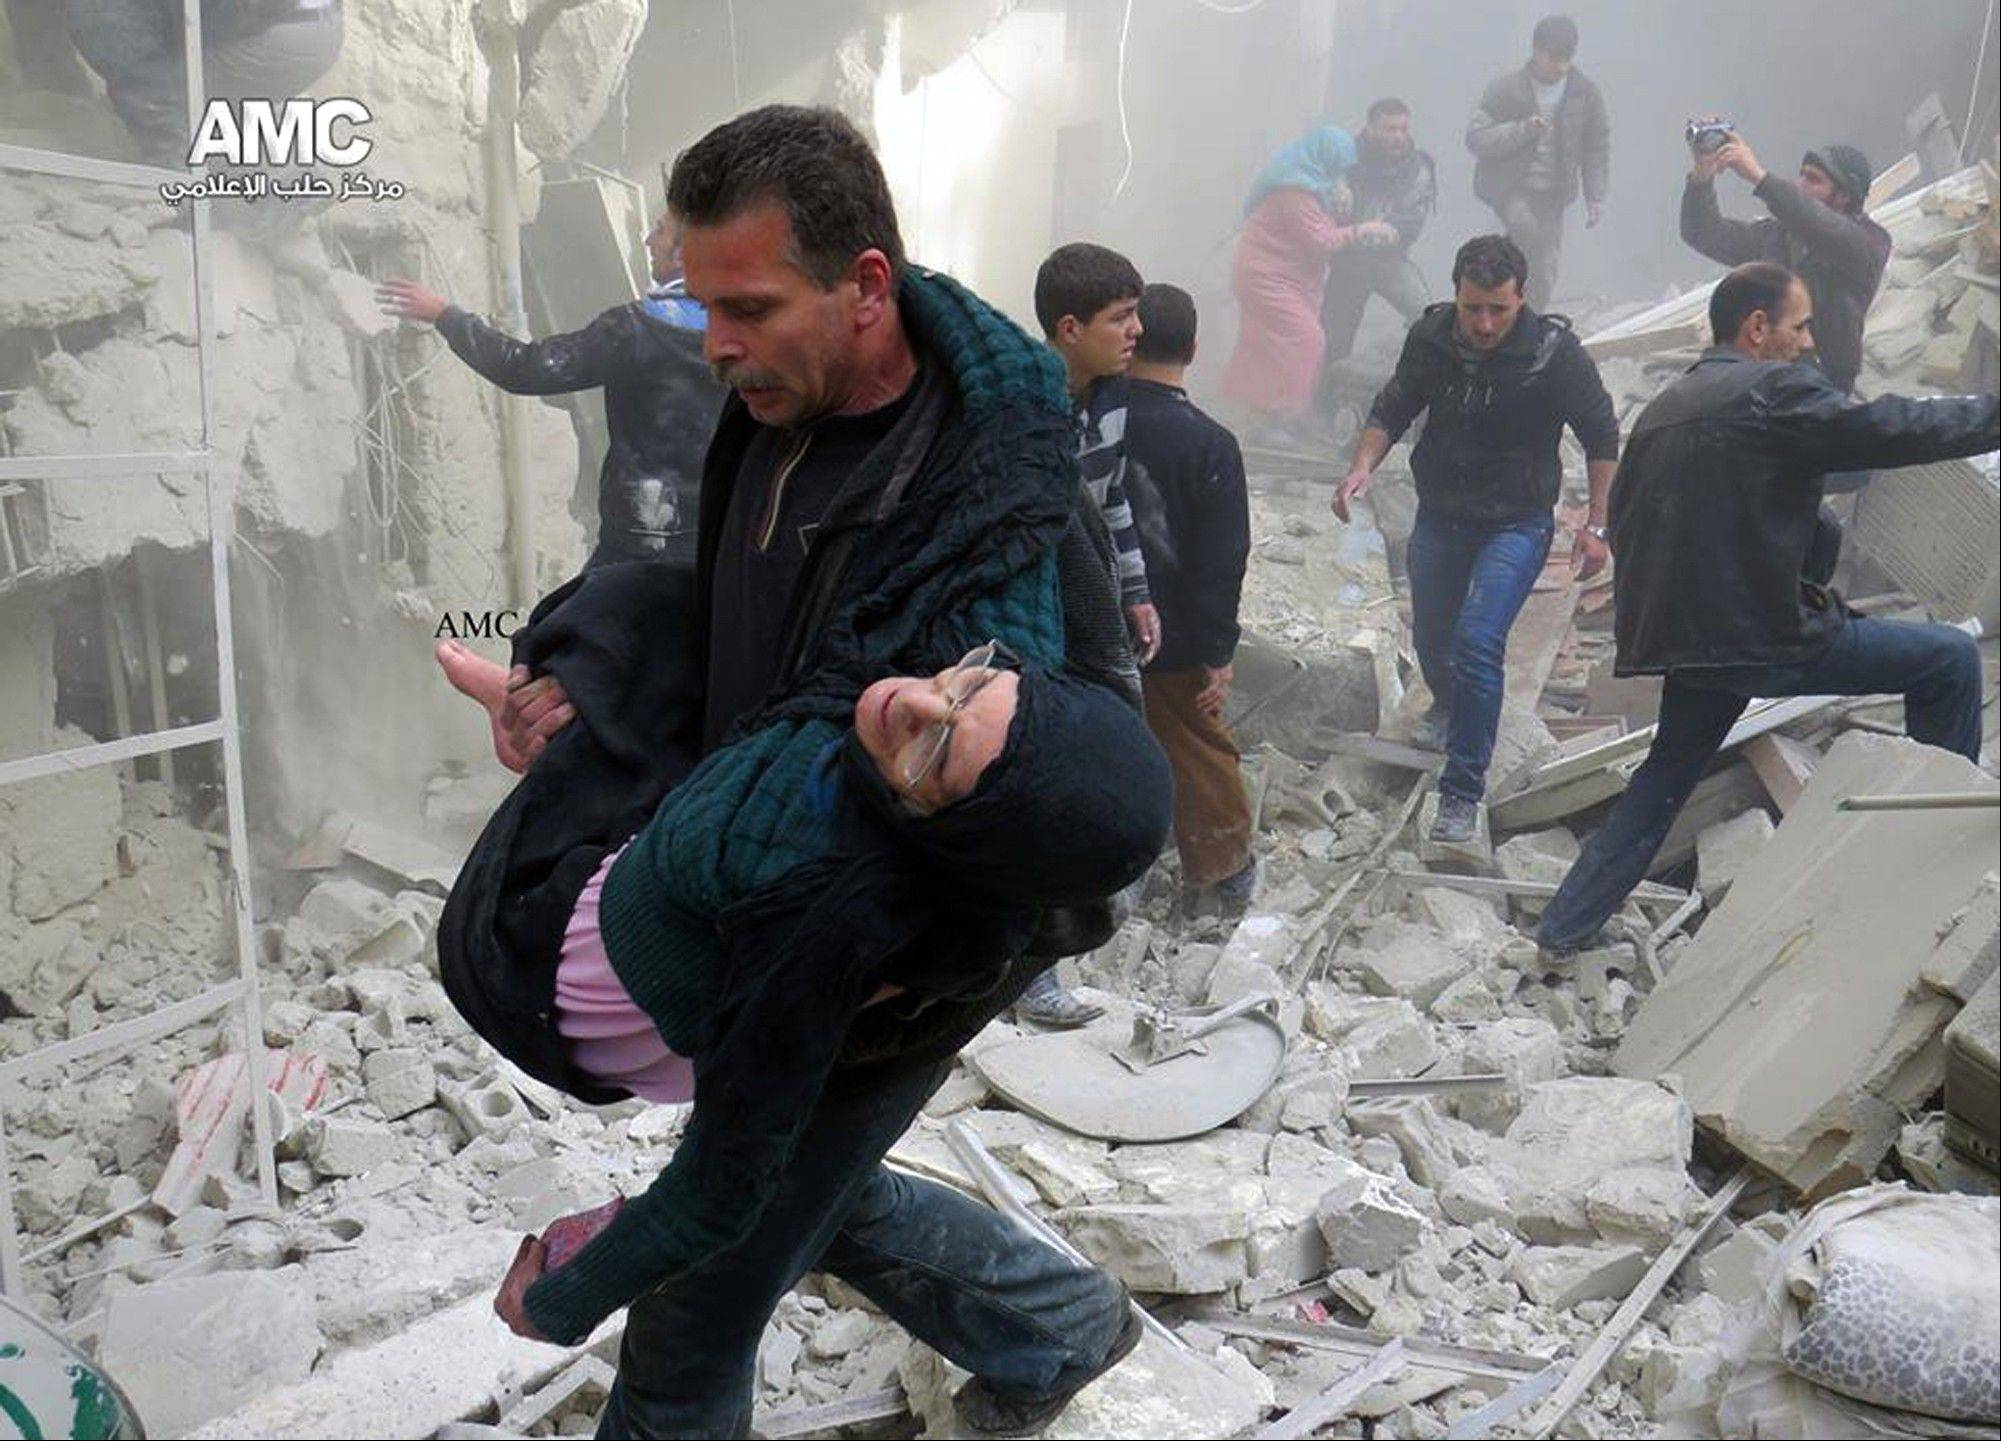 A Syrian man carries an injured woman from a destroyed building which was attacked by Syrian forces warplanes in Aleppo, Syria.